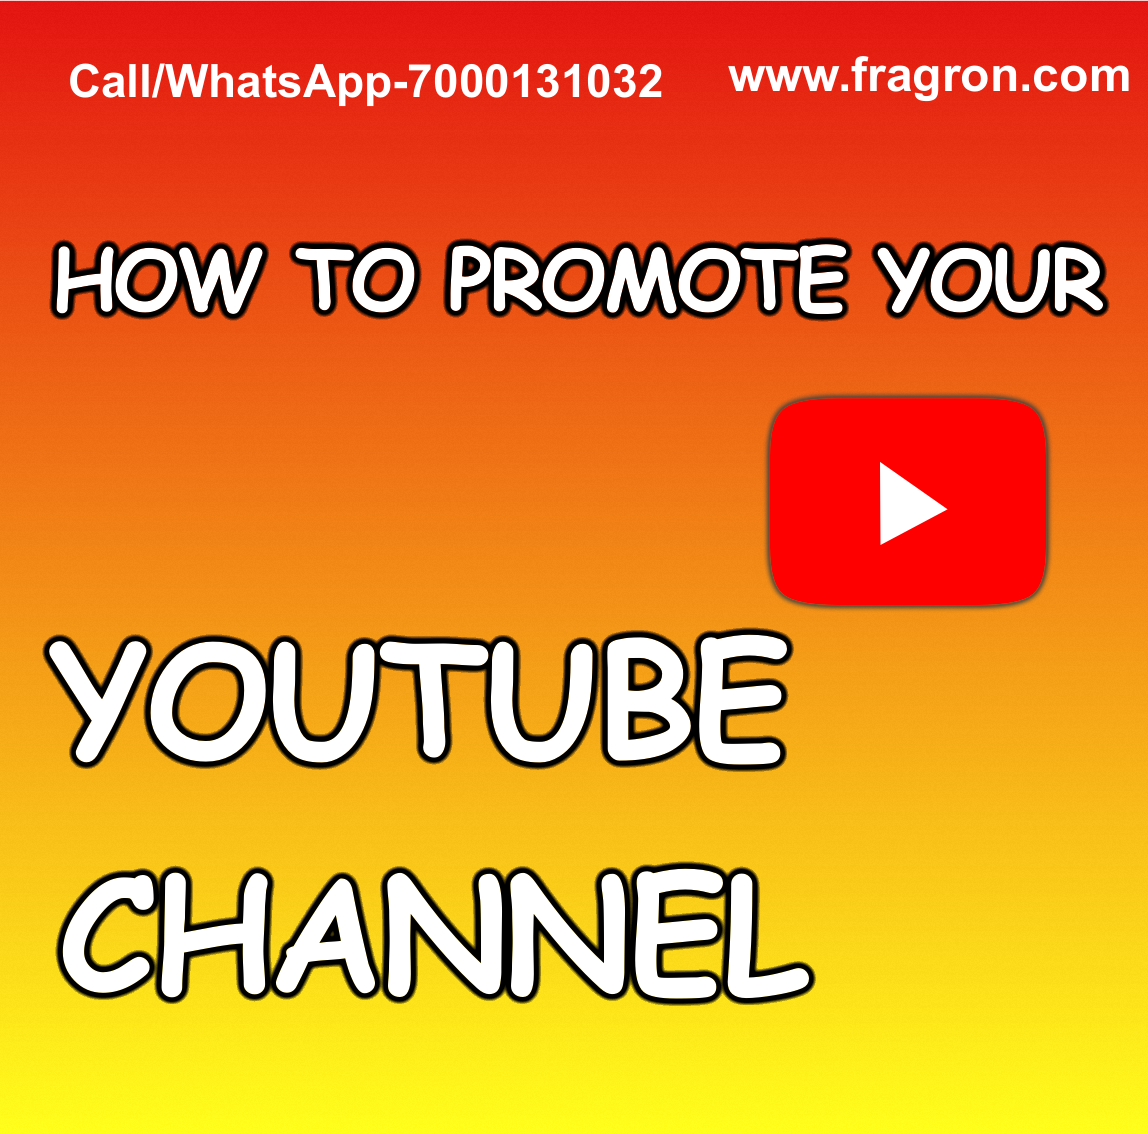 How To Promote your Youtube Channel